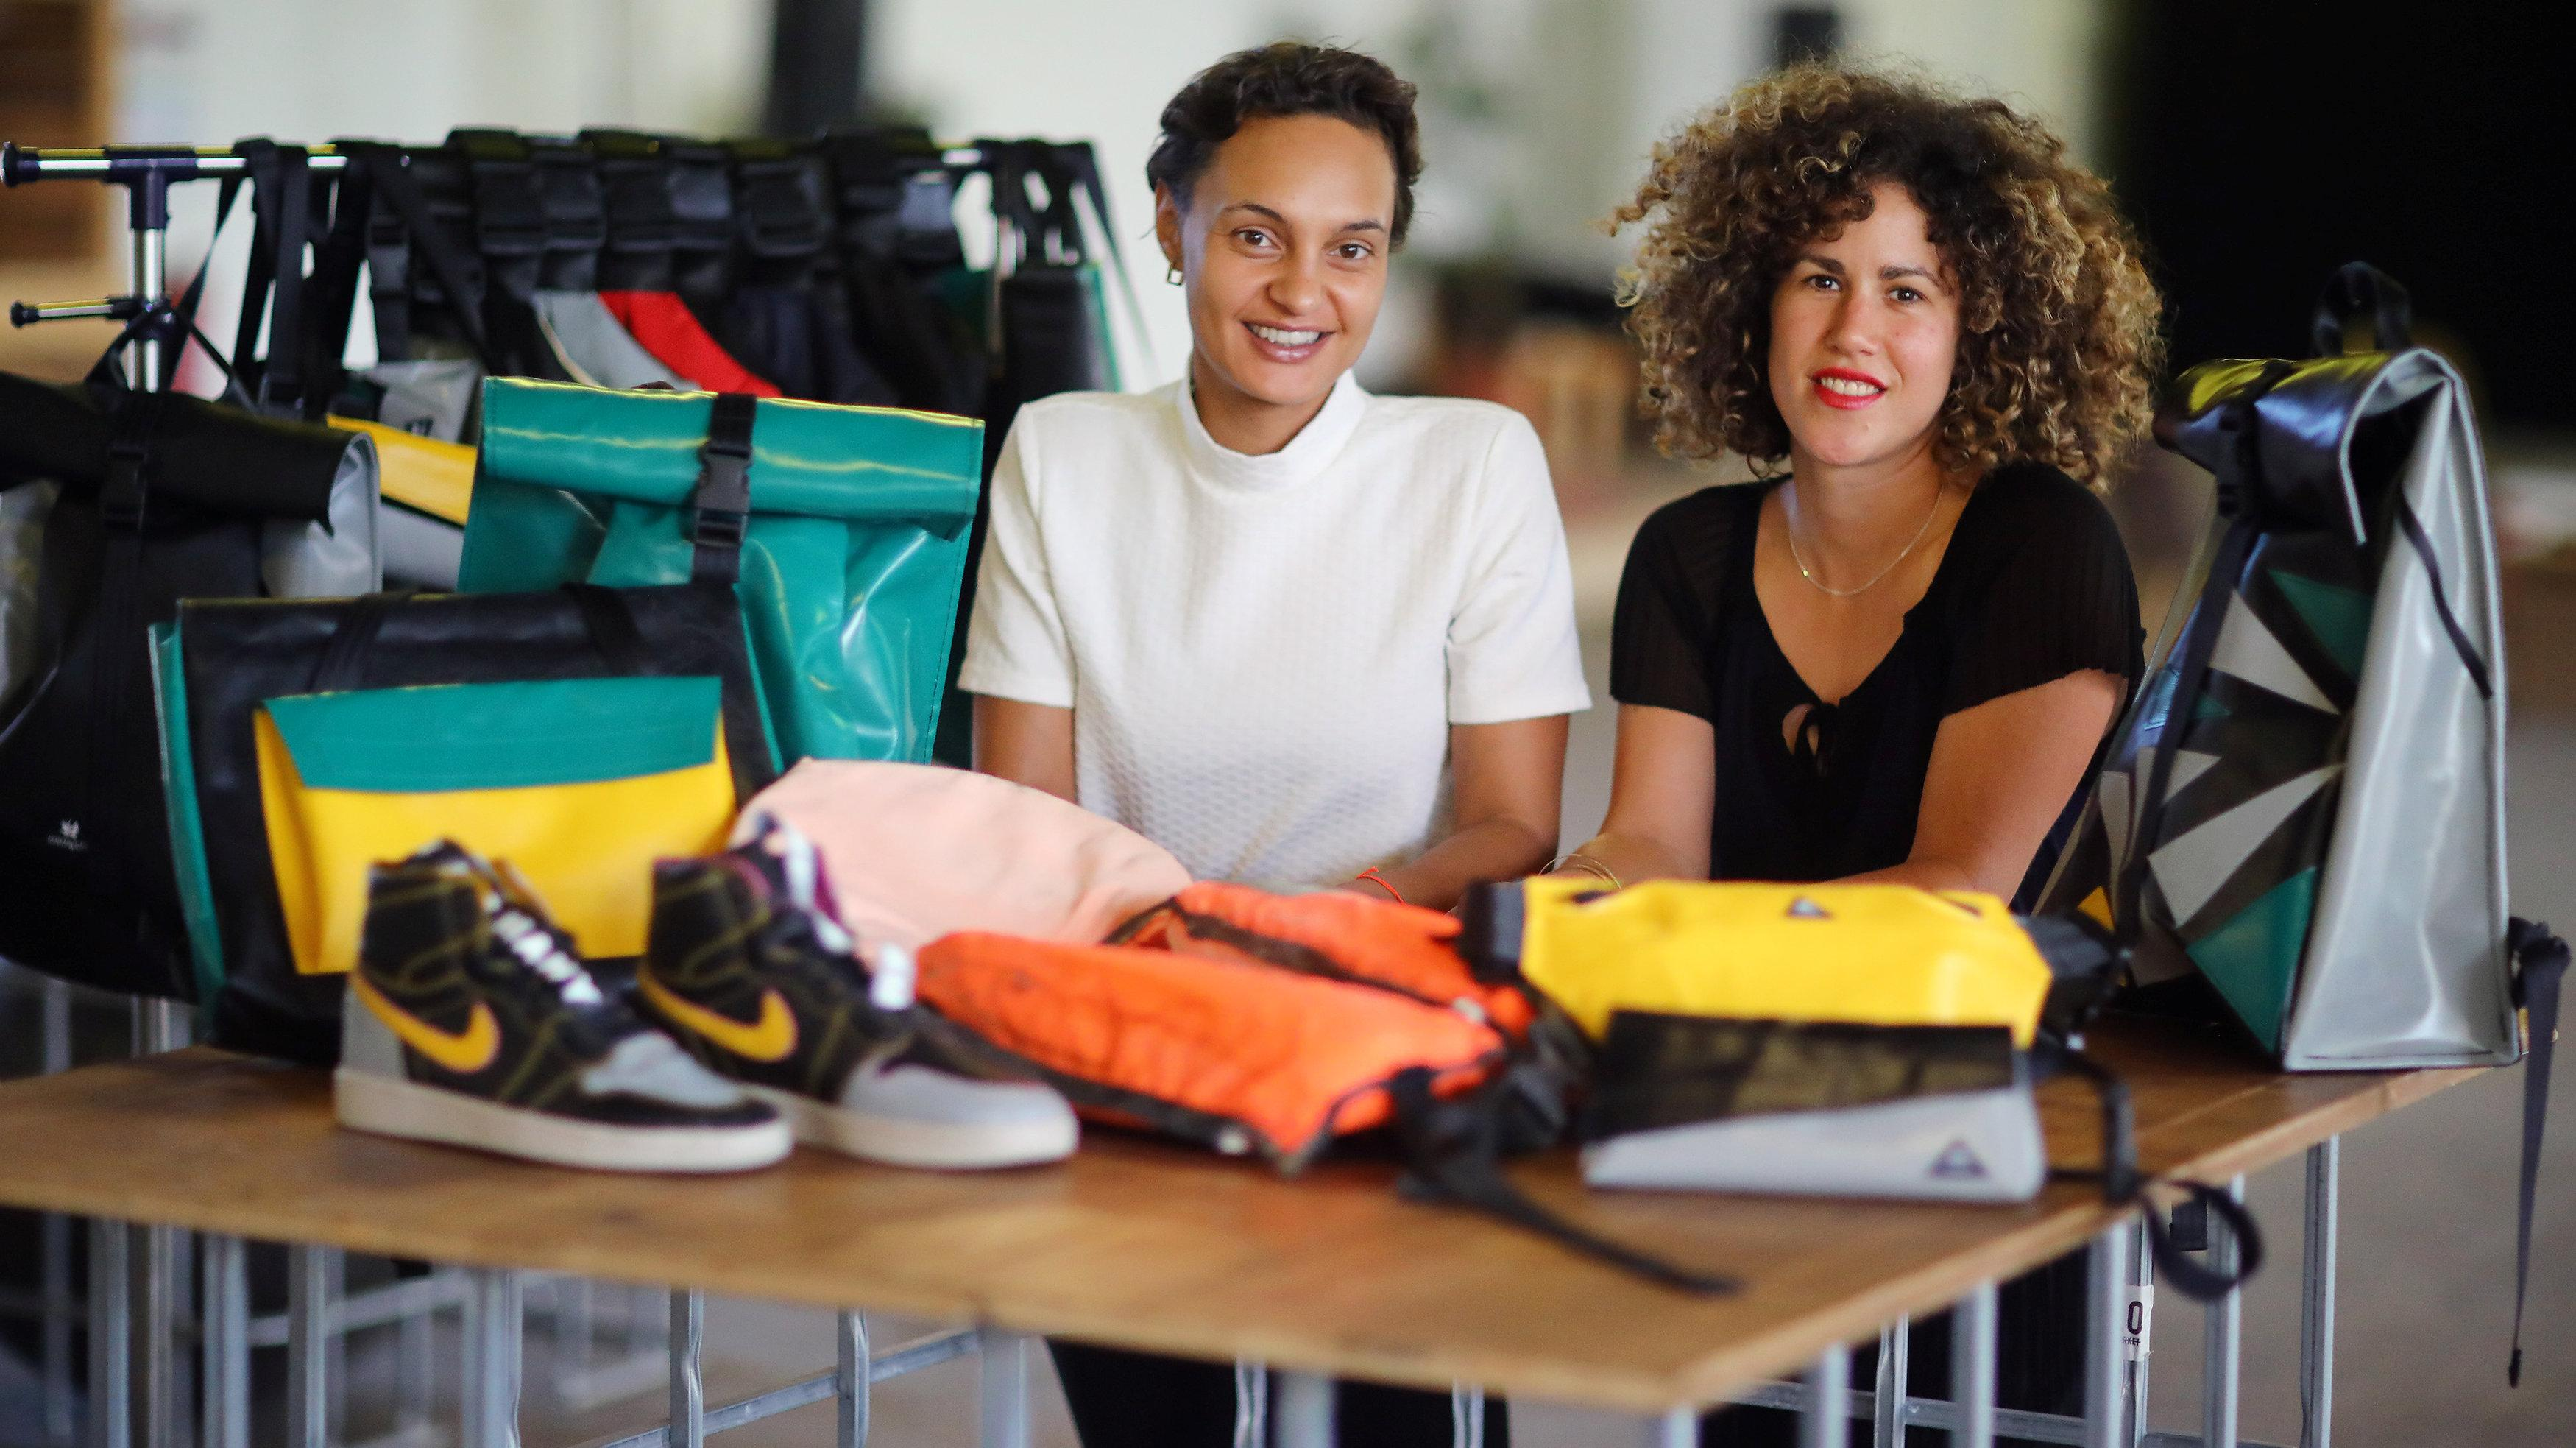 The founders Nora Azzaoui and Vera Guenther are pictured at their non-profit organization Mimycri, which recycles parts of a discarded dinghies into bags, in Berlin, Germany, July 23, 2018. Hannibal Hanschke